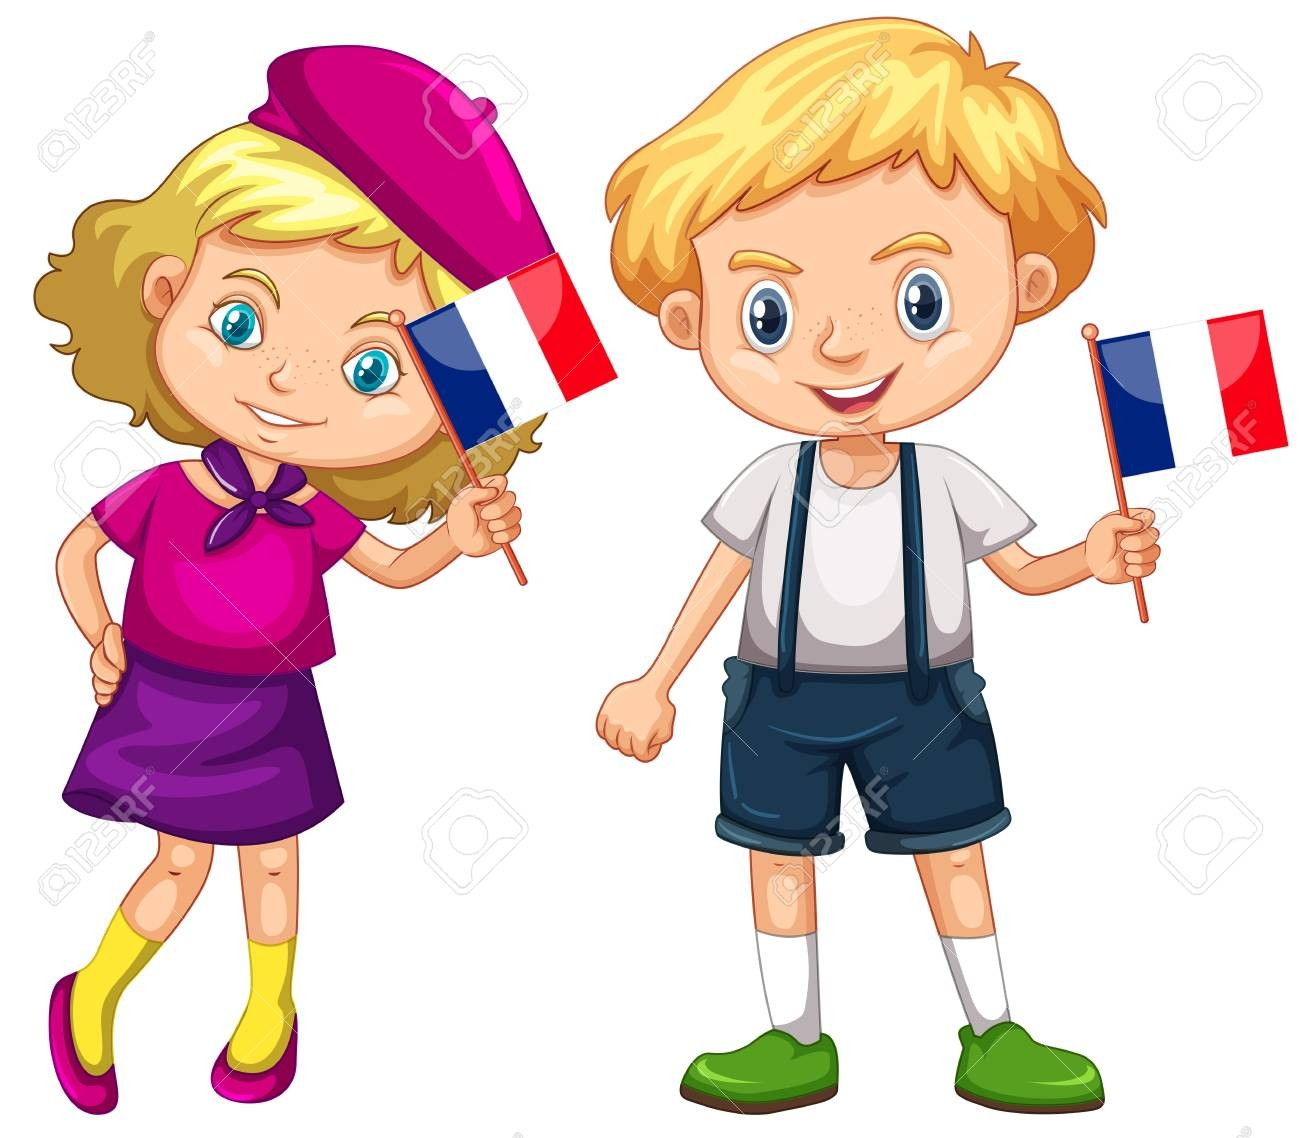 On Clipart French Girl 79459915 Boy And Holding Flag Of France.